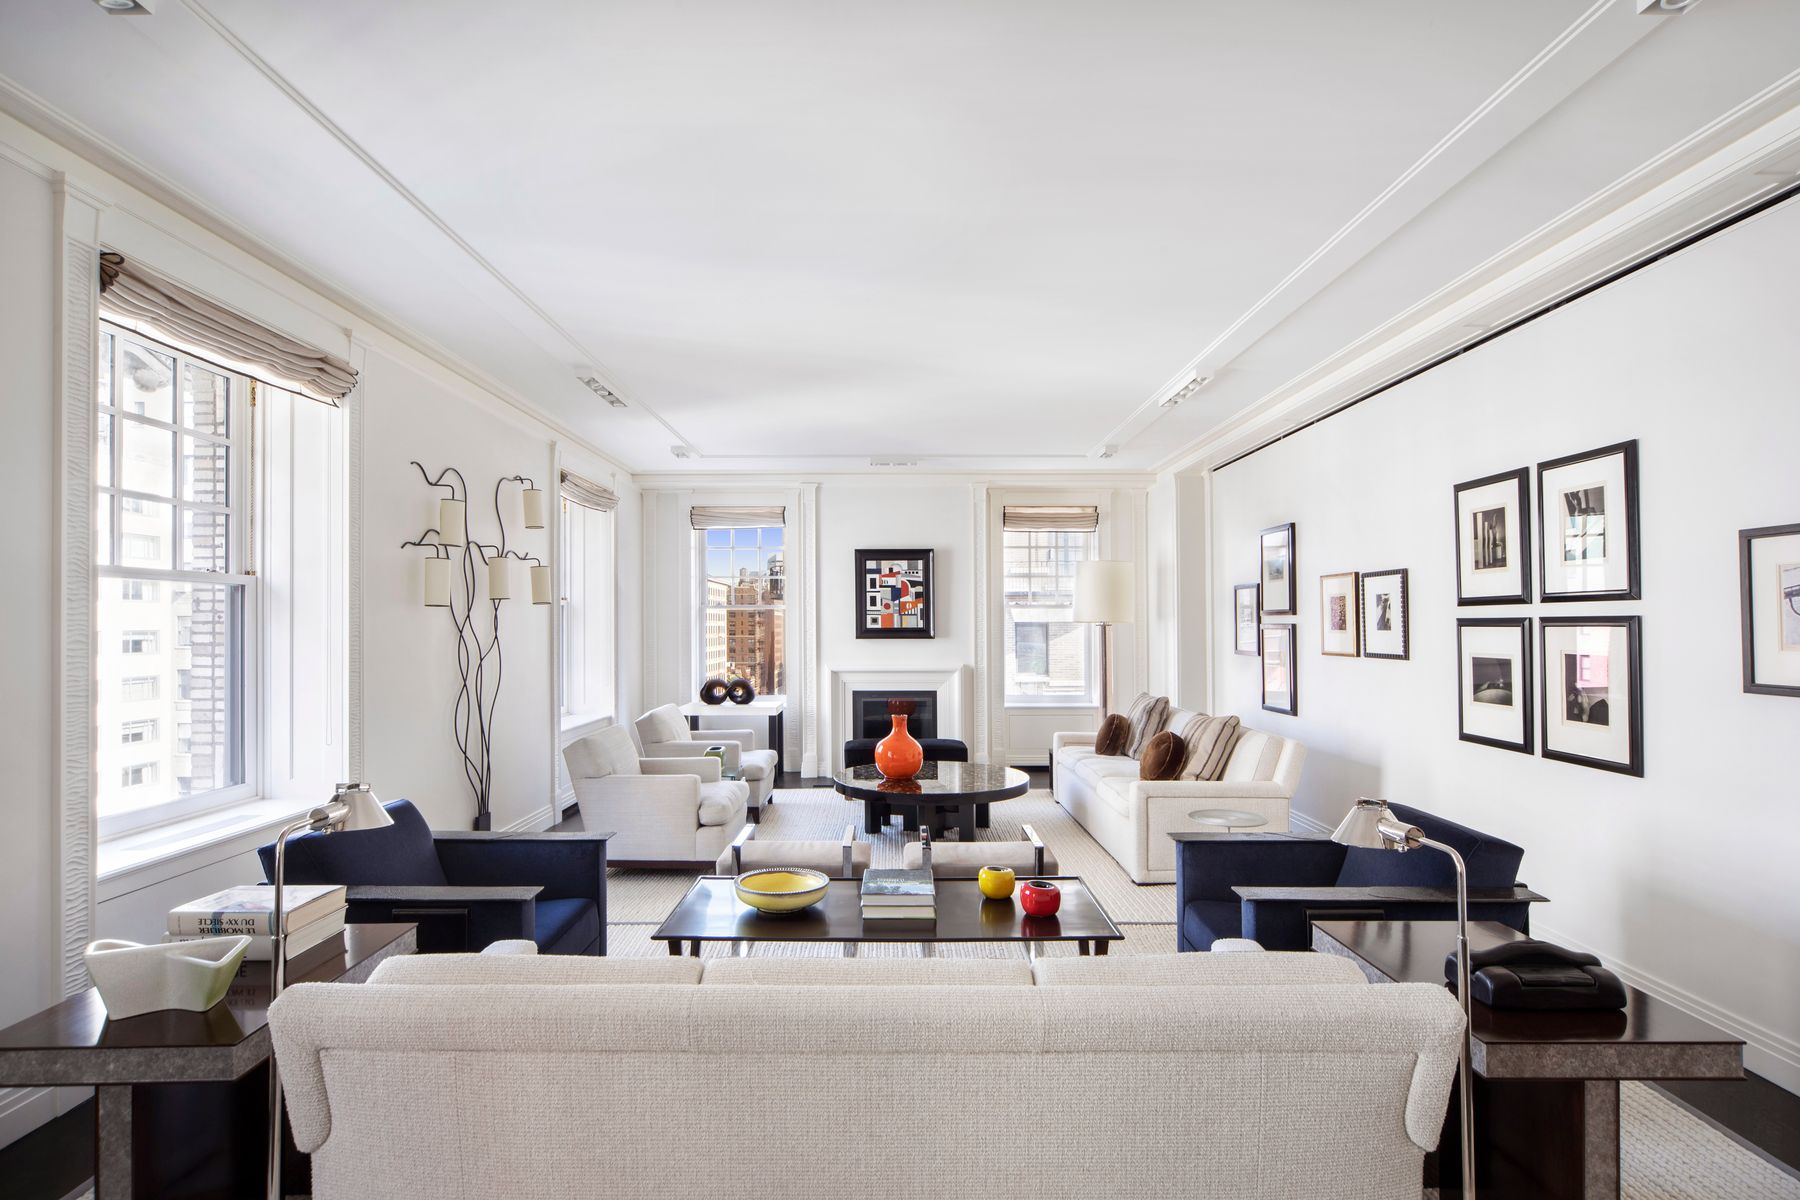 condominiums for Sale at 525 Park Avenue, 11AB 525 Park Avenue 11AB New York, New York 10065 United States